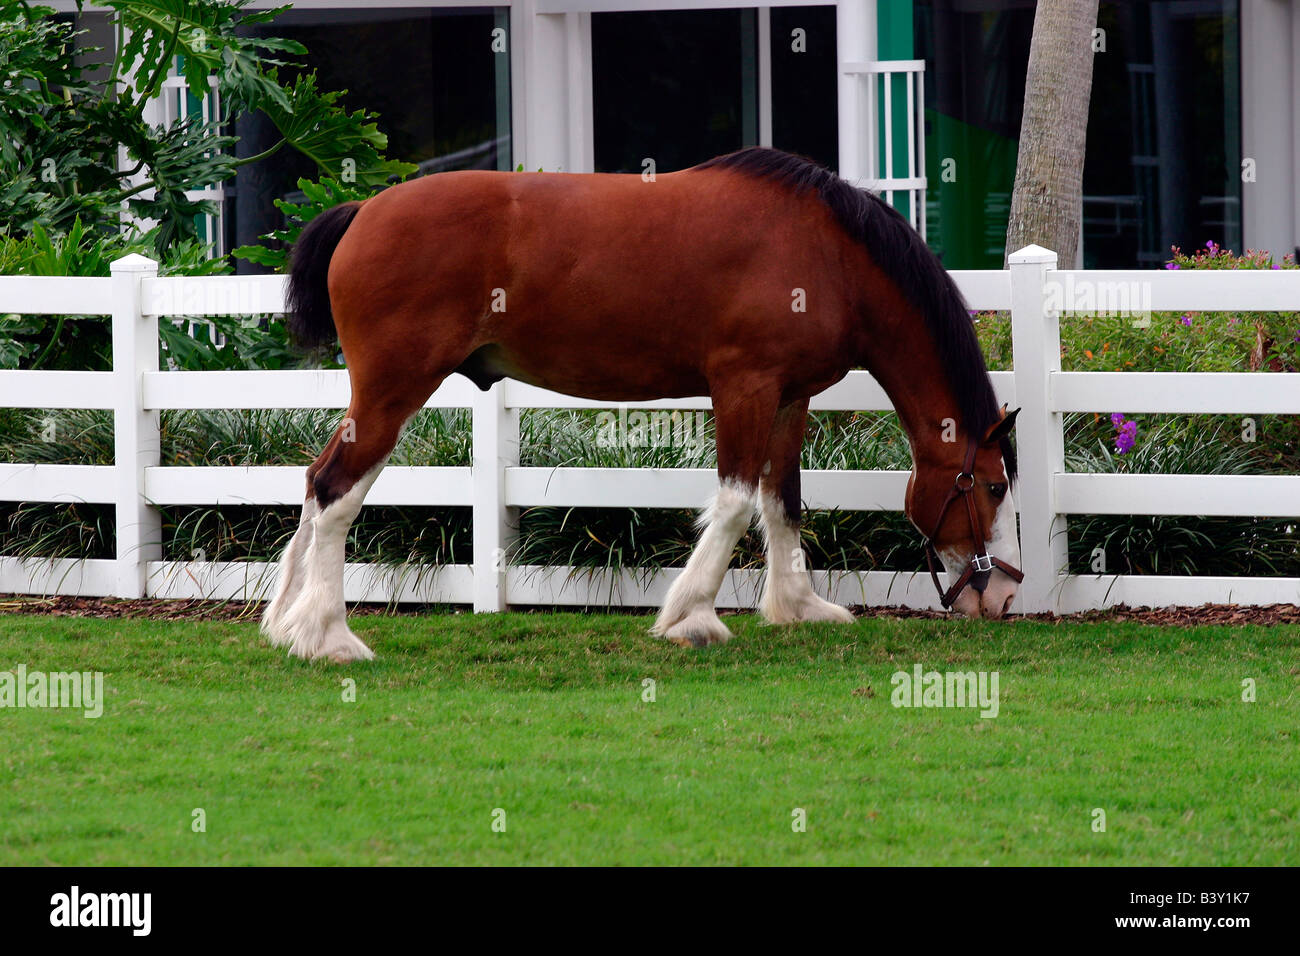 Brown Clydesdale Horse With White Blaze High Resolution Stock Photography And Images Alamy